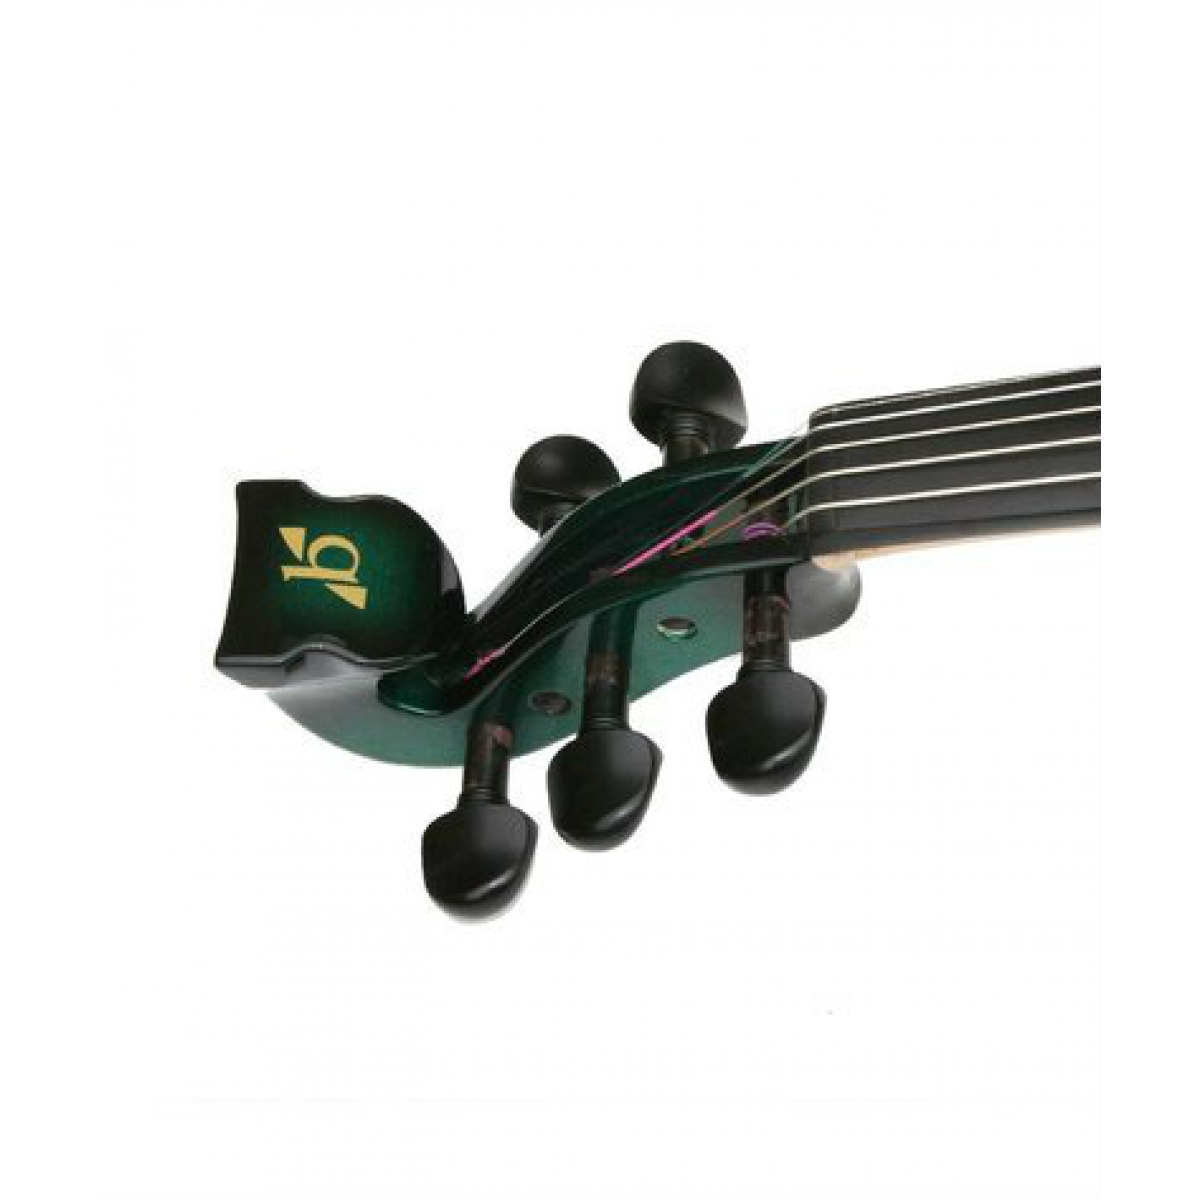 Bridge Lyra 5 String Electric Violin Green Black at